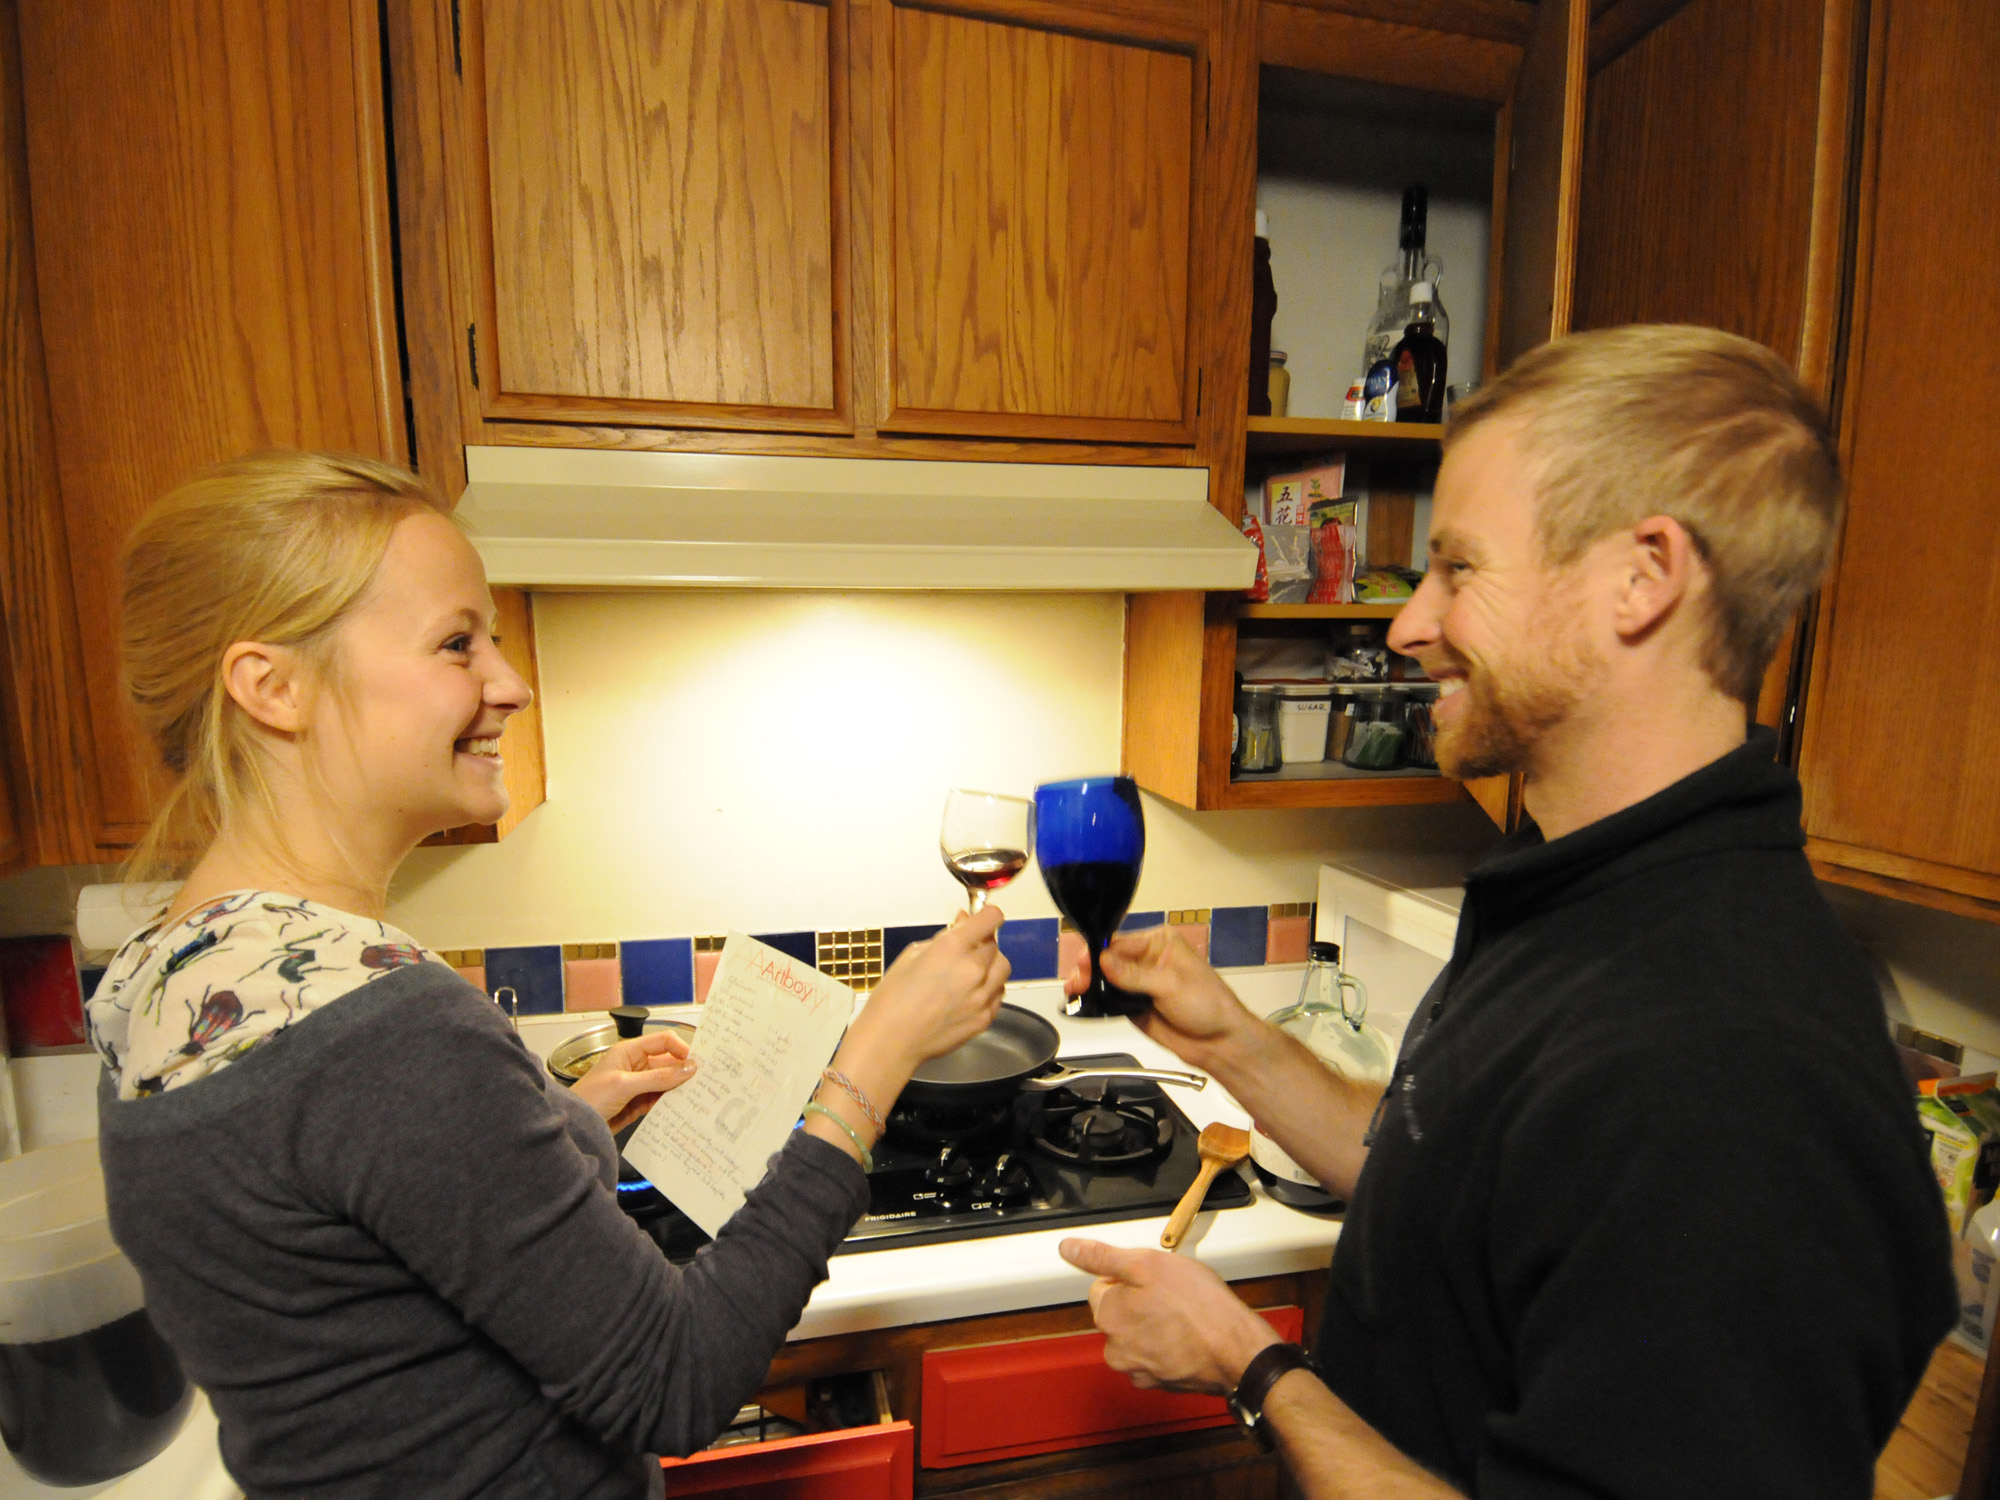 Bianca Golling & Mike Liggett clinking wine glasses in the kitchen